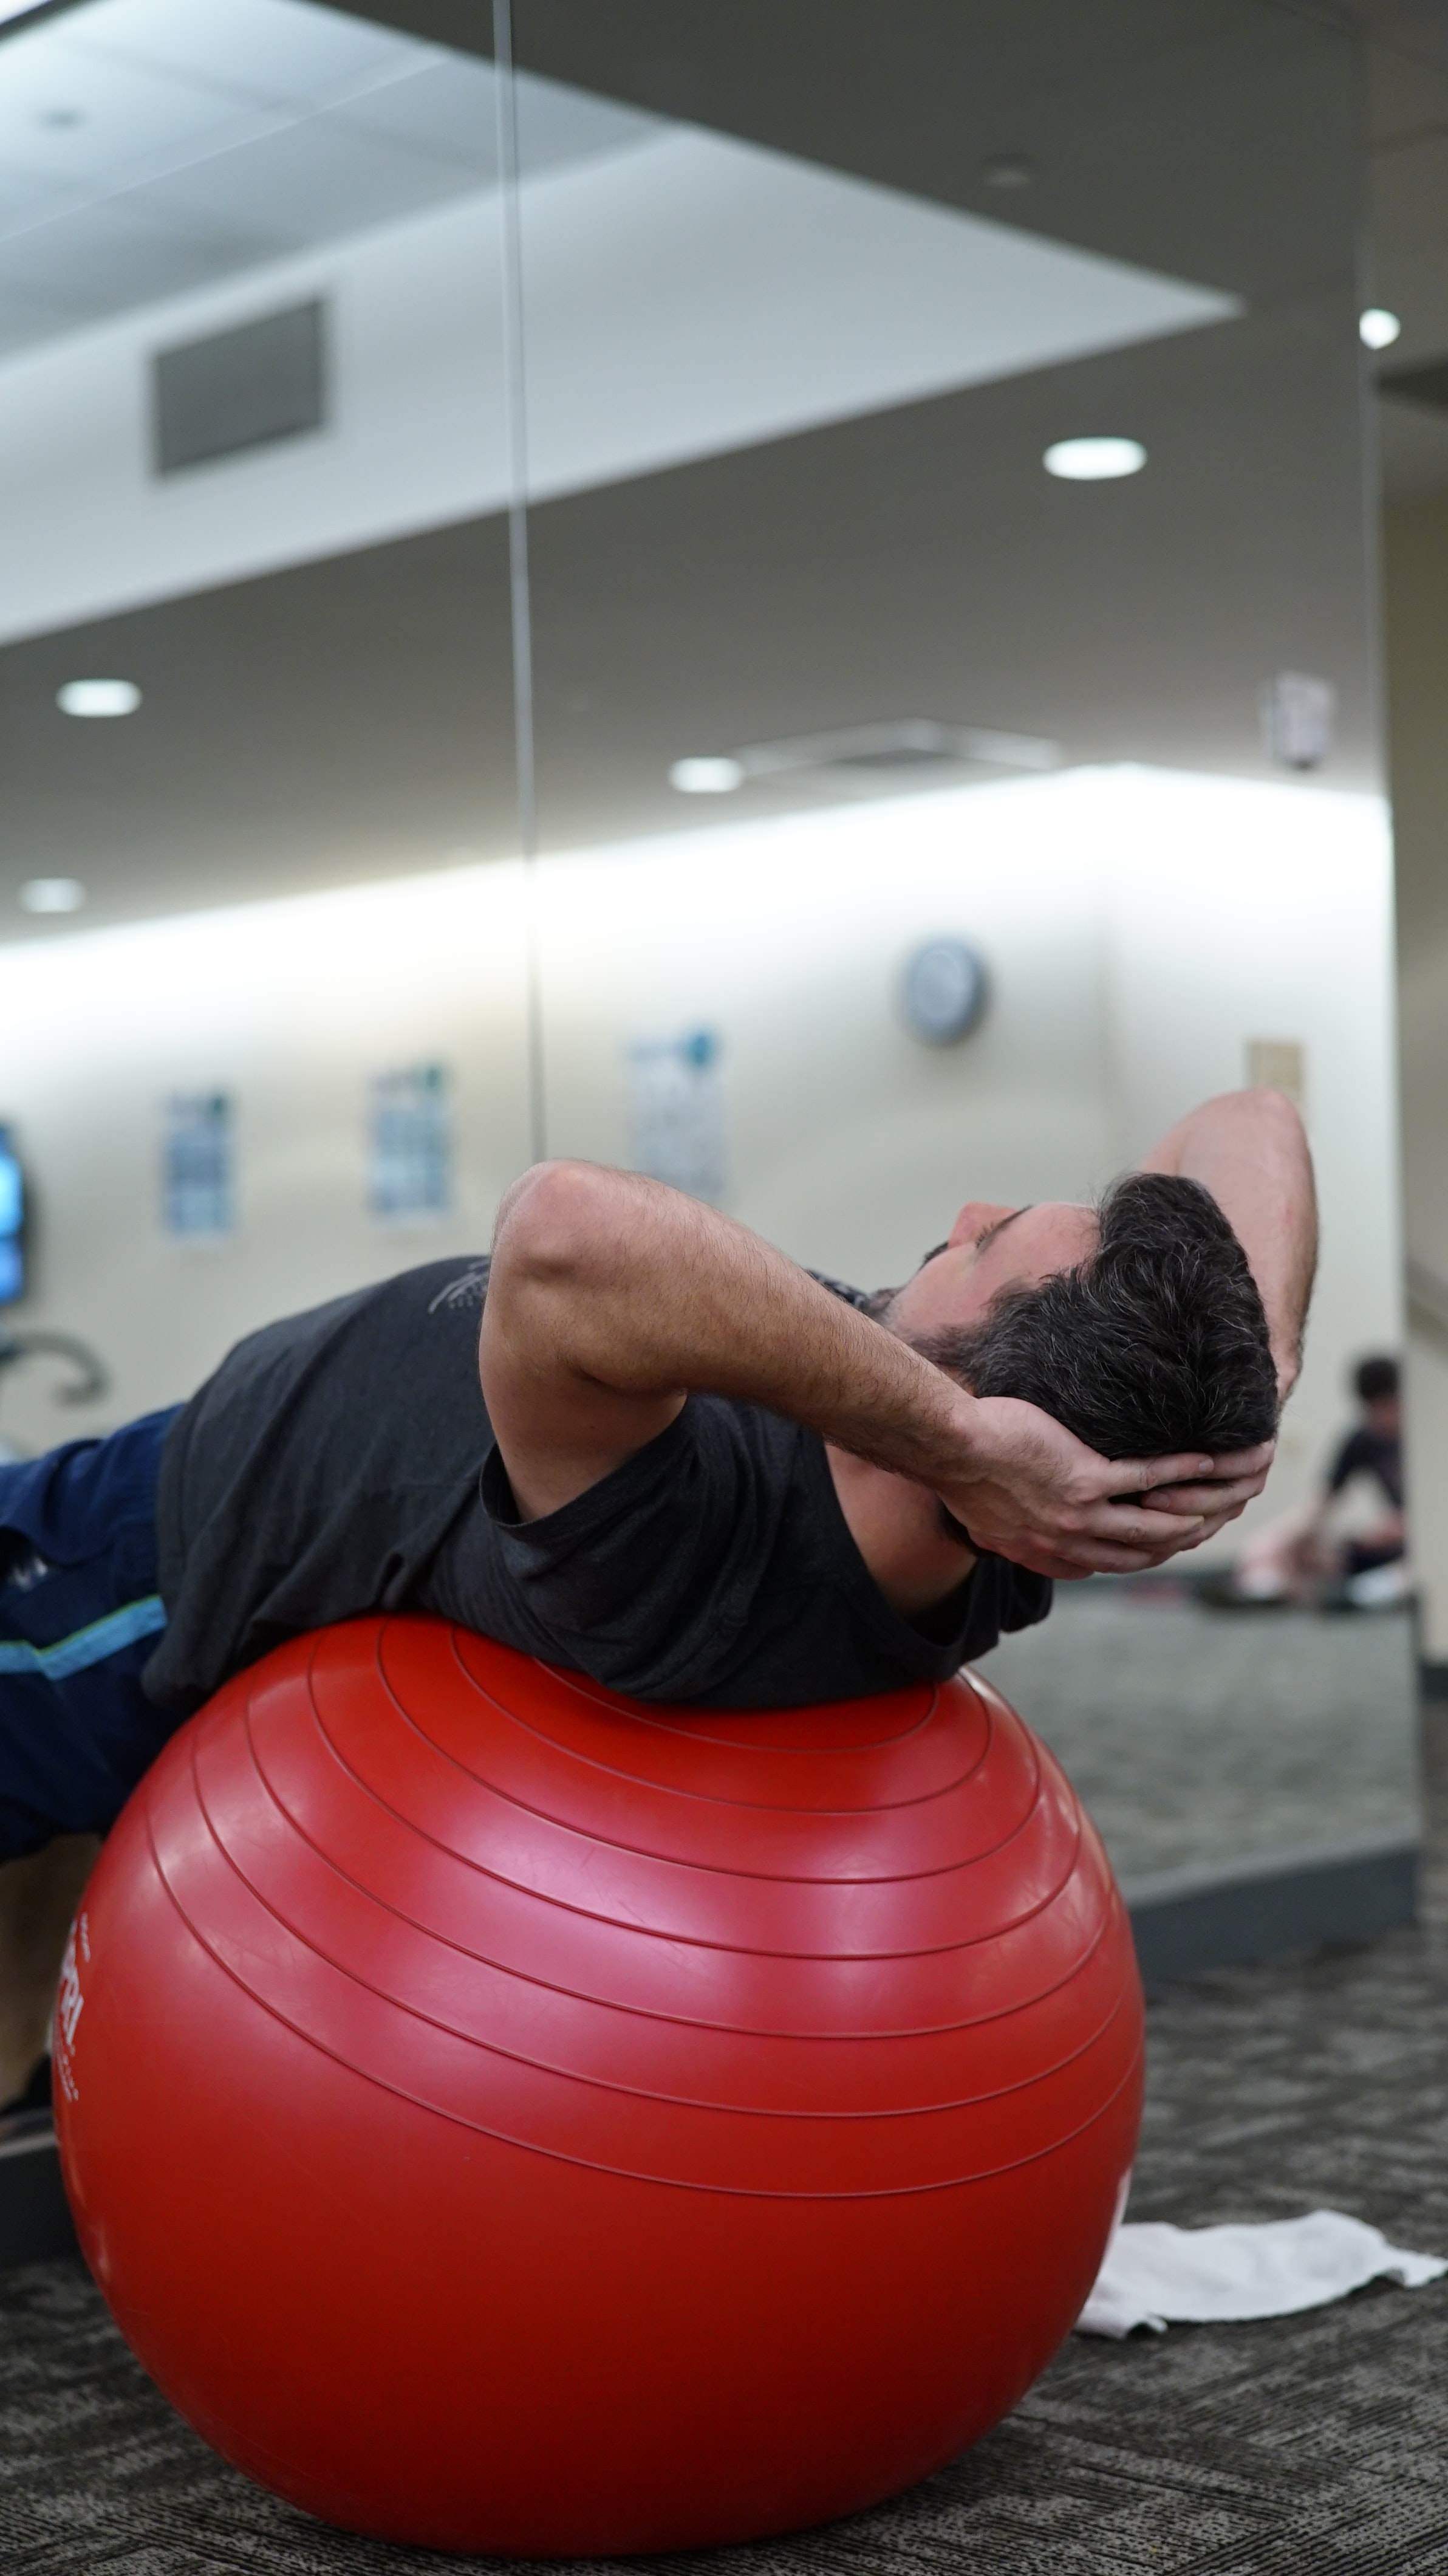 man lying on red stability ball